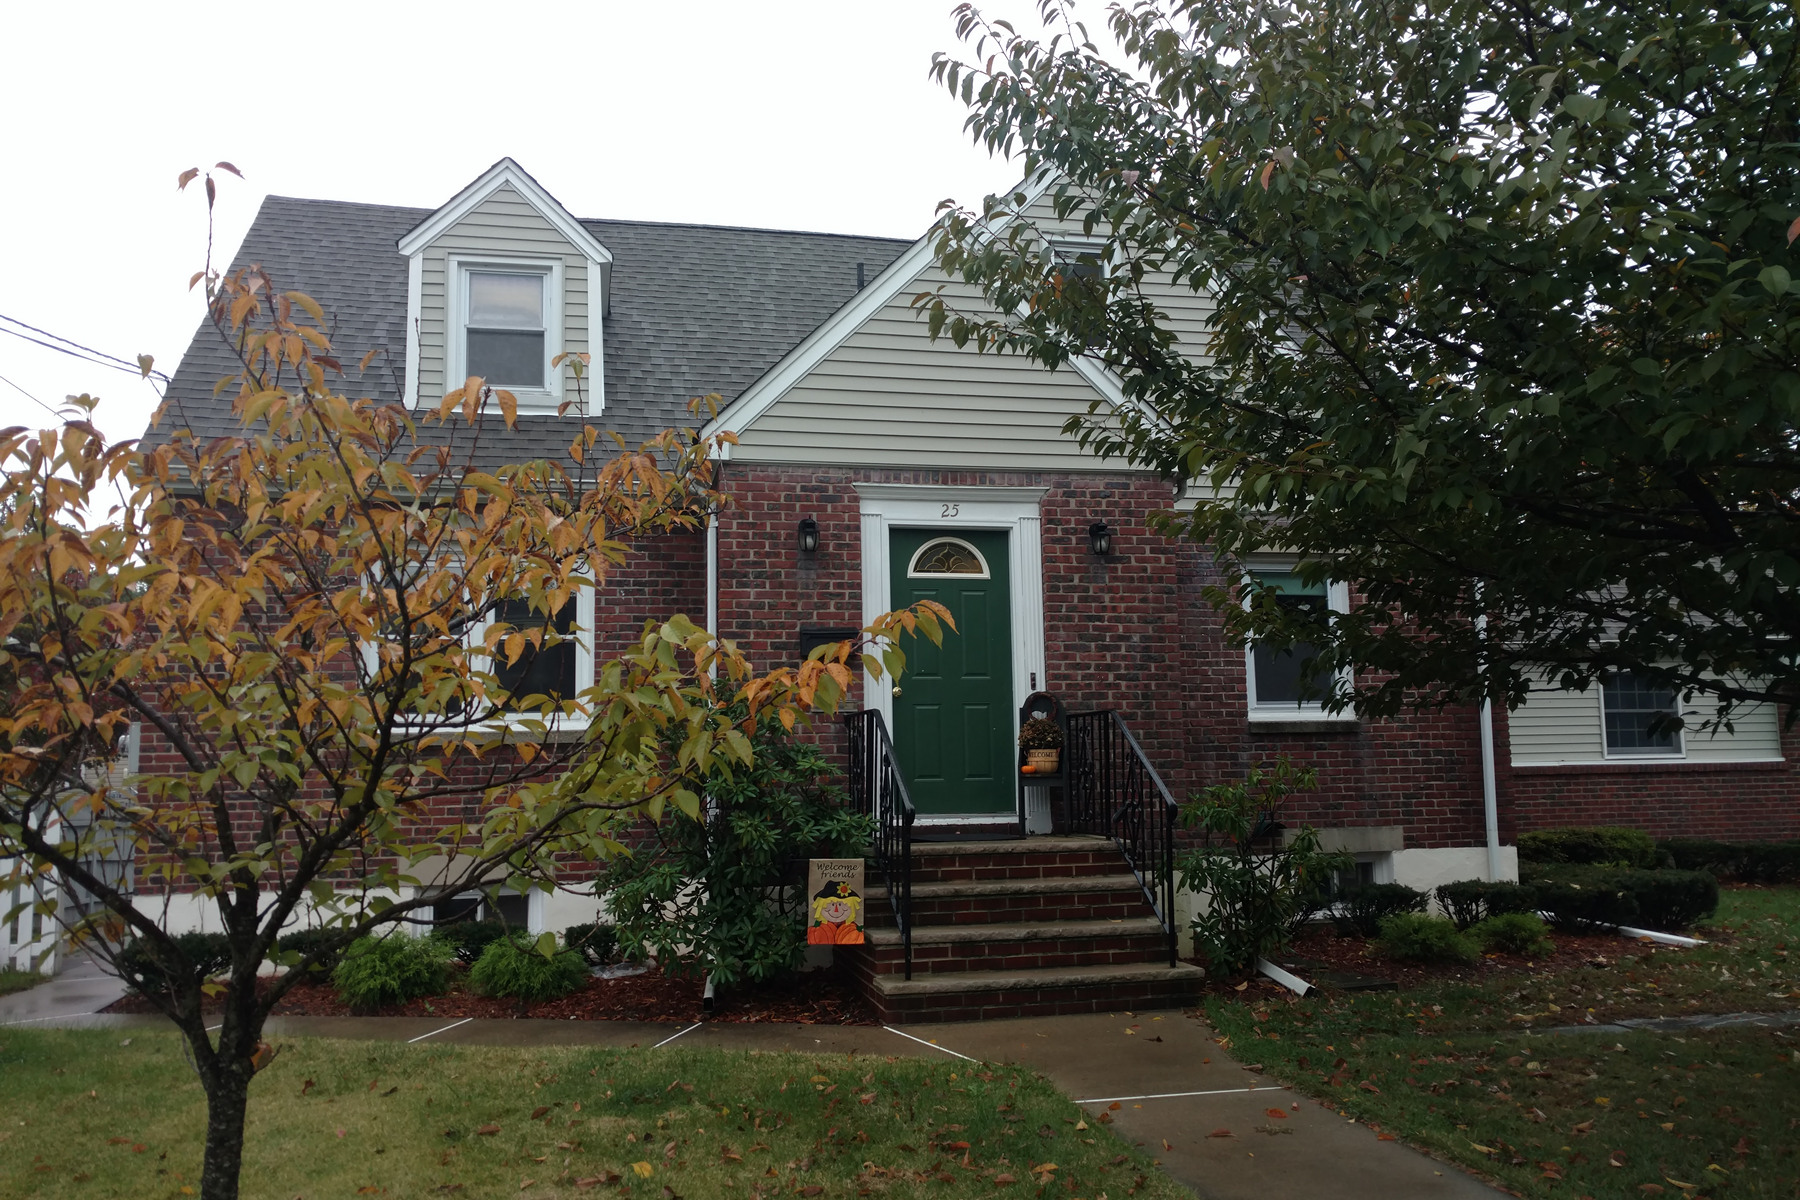 Multi-Family Home for Rent at Updated Apartment 25 Druid Ave, Dumont, New Jersey 07628 United States